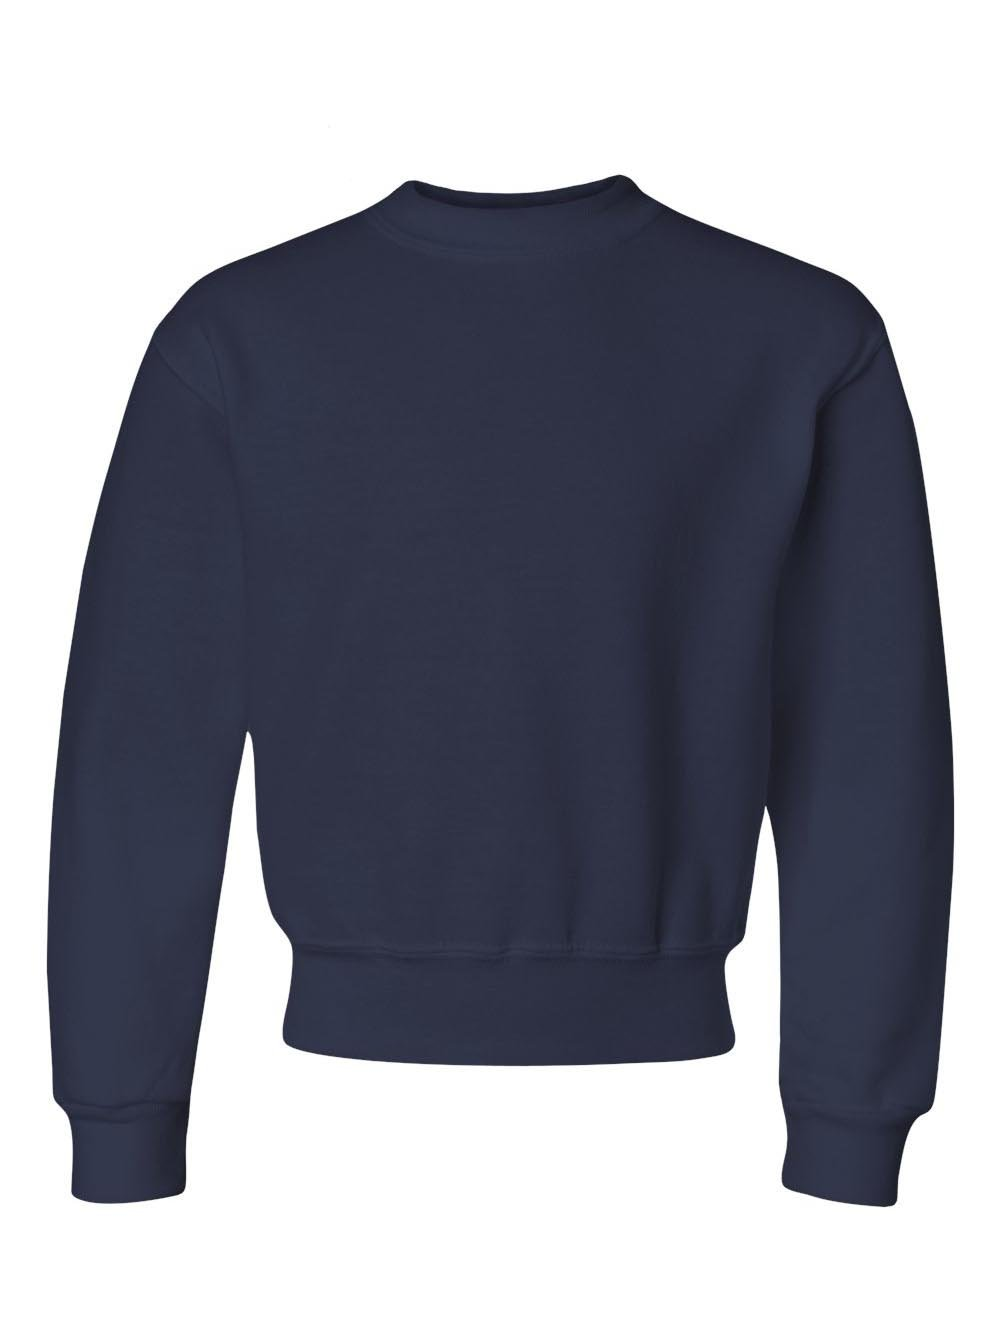 Jerzees Nublend Youth Crewneck Sweatshirt (J. Navy) (L)